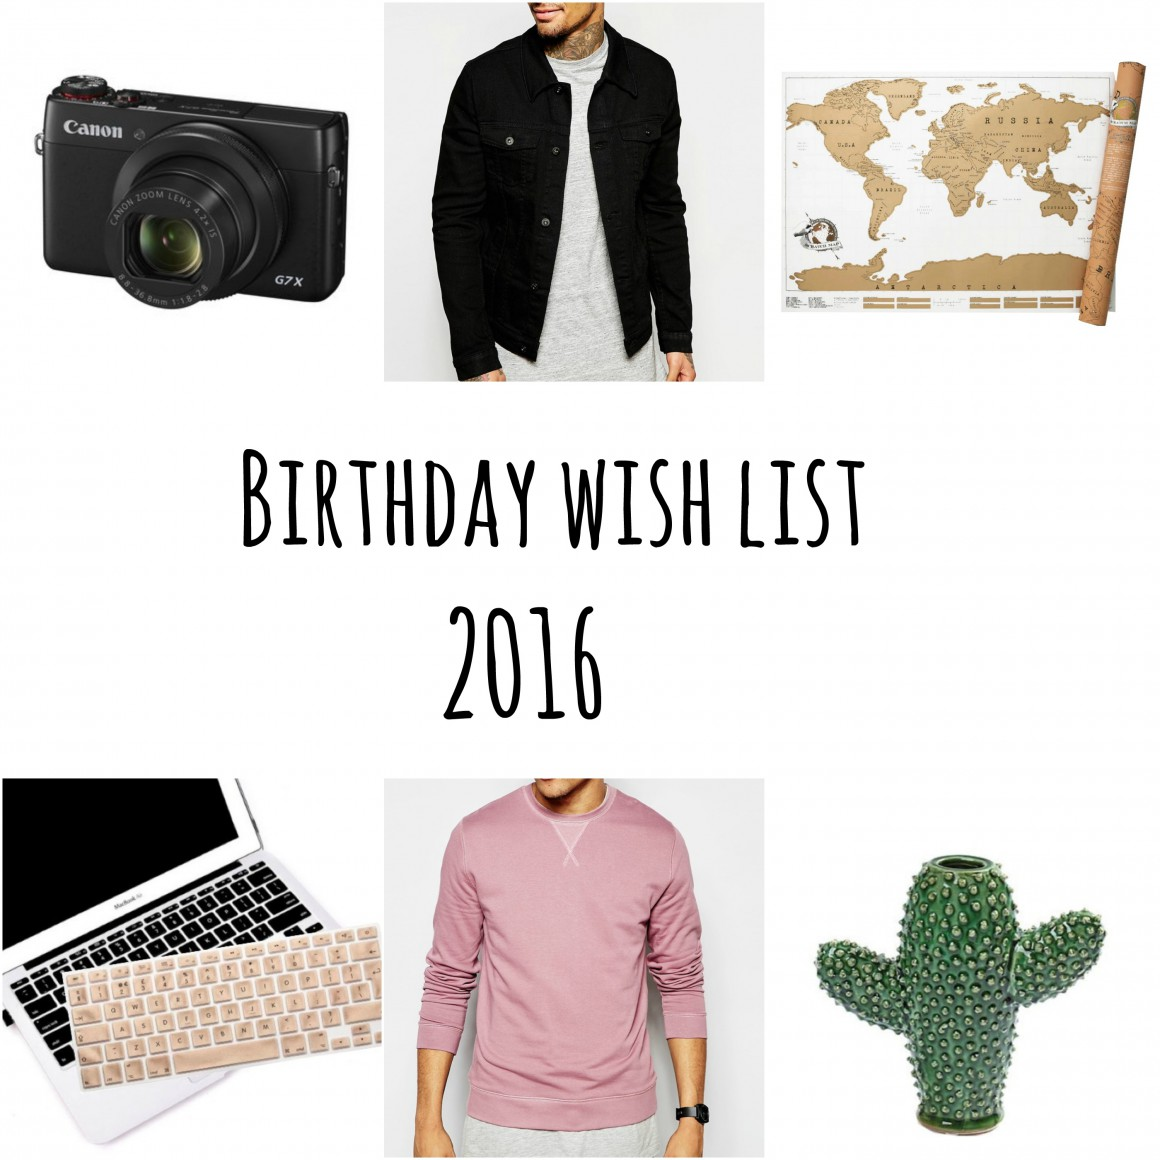 Birthday wishlist 2016 justkvn menswear and lifestyle blog